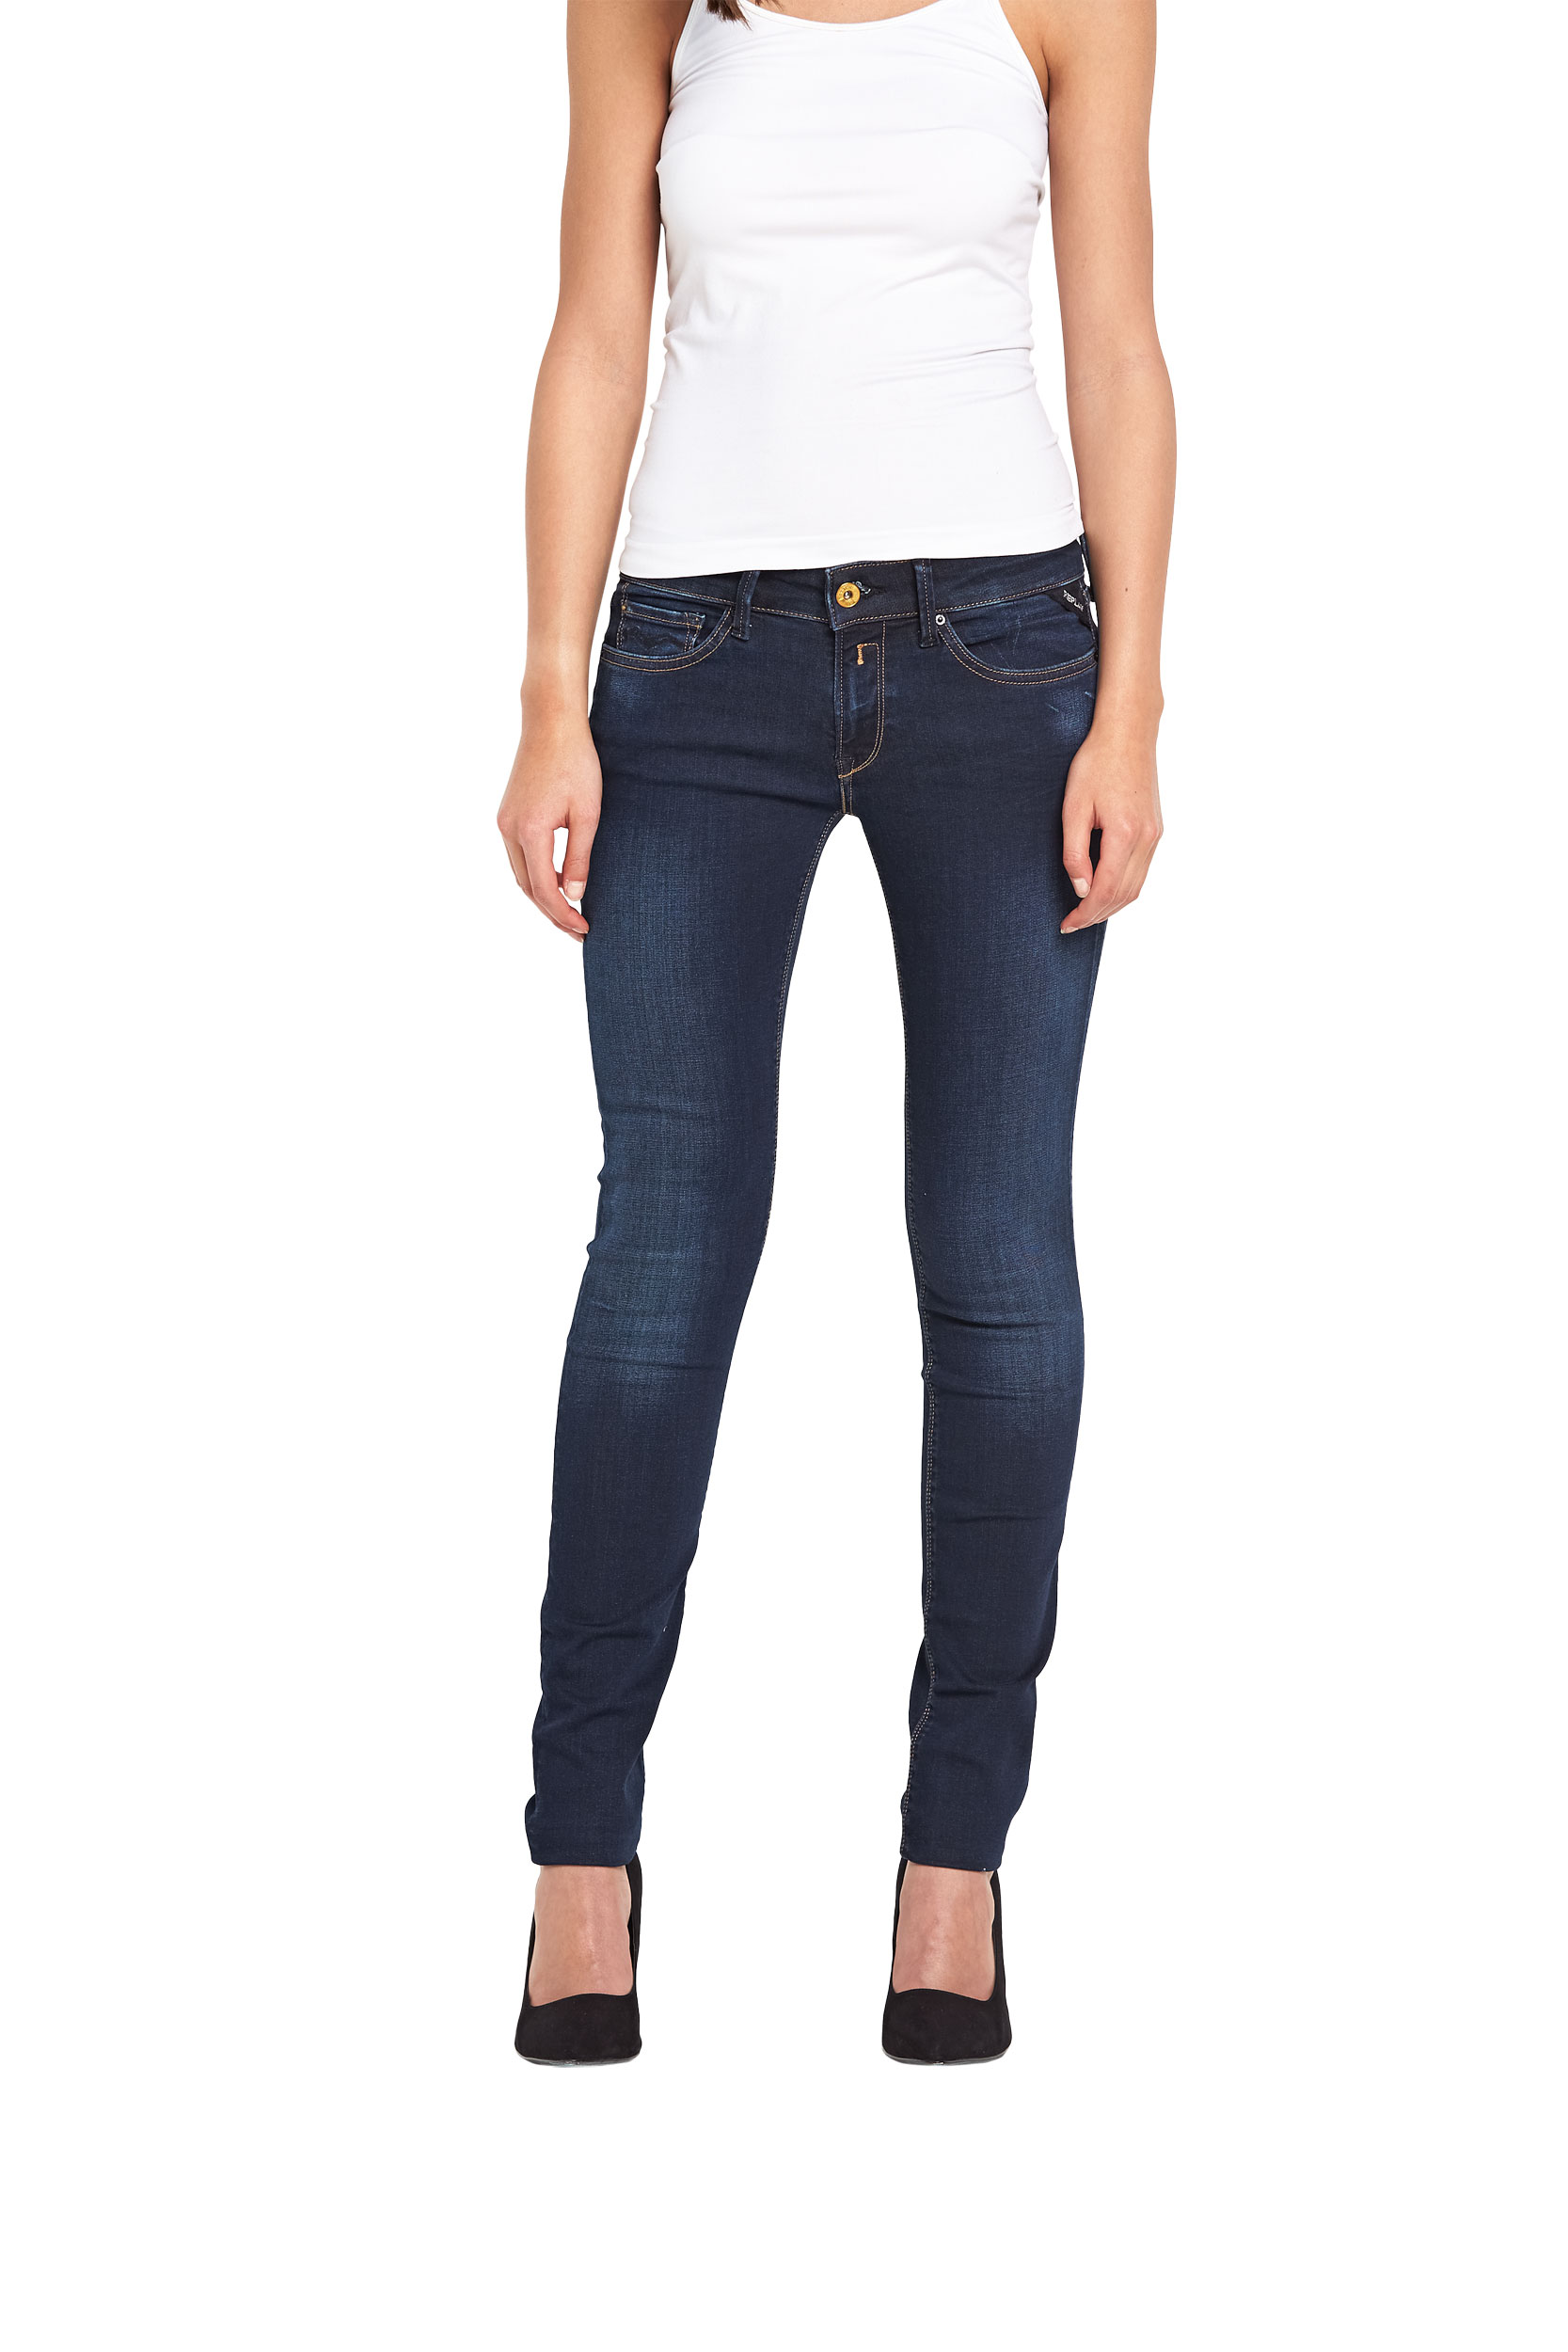 Replay Luz Mid Rise Super Skinny Jeans